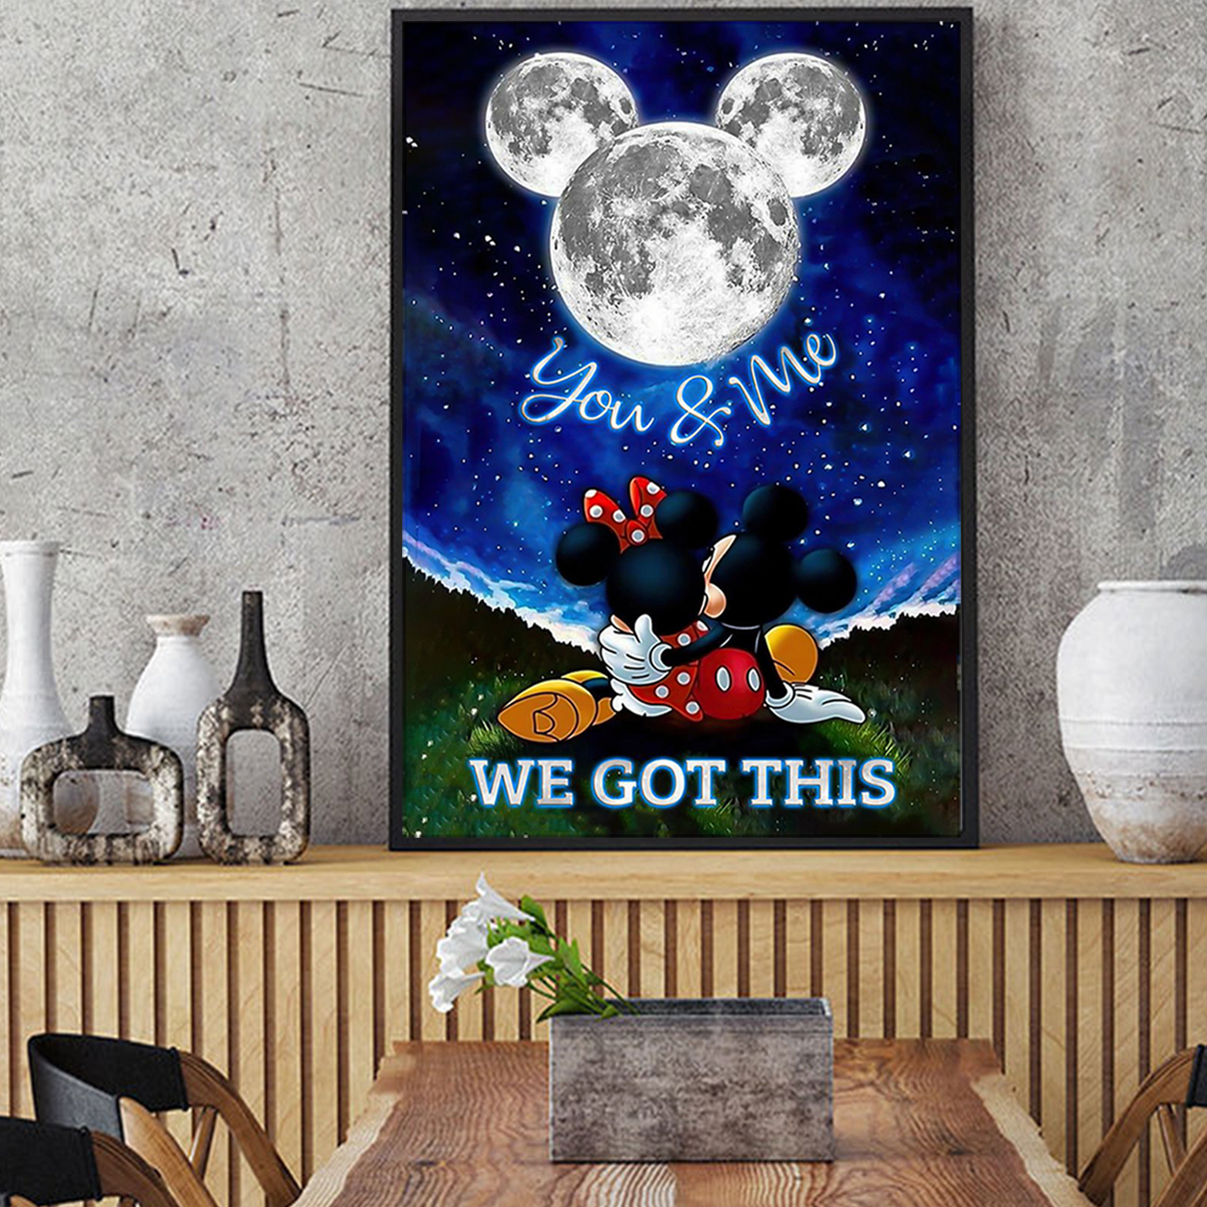 Mickey and minnie moon you and me we got this poster A2